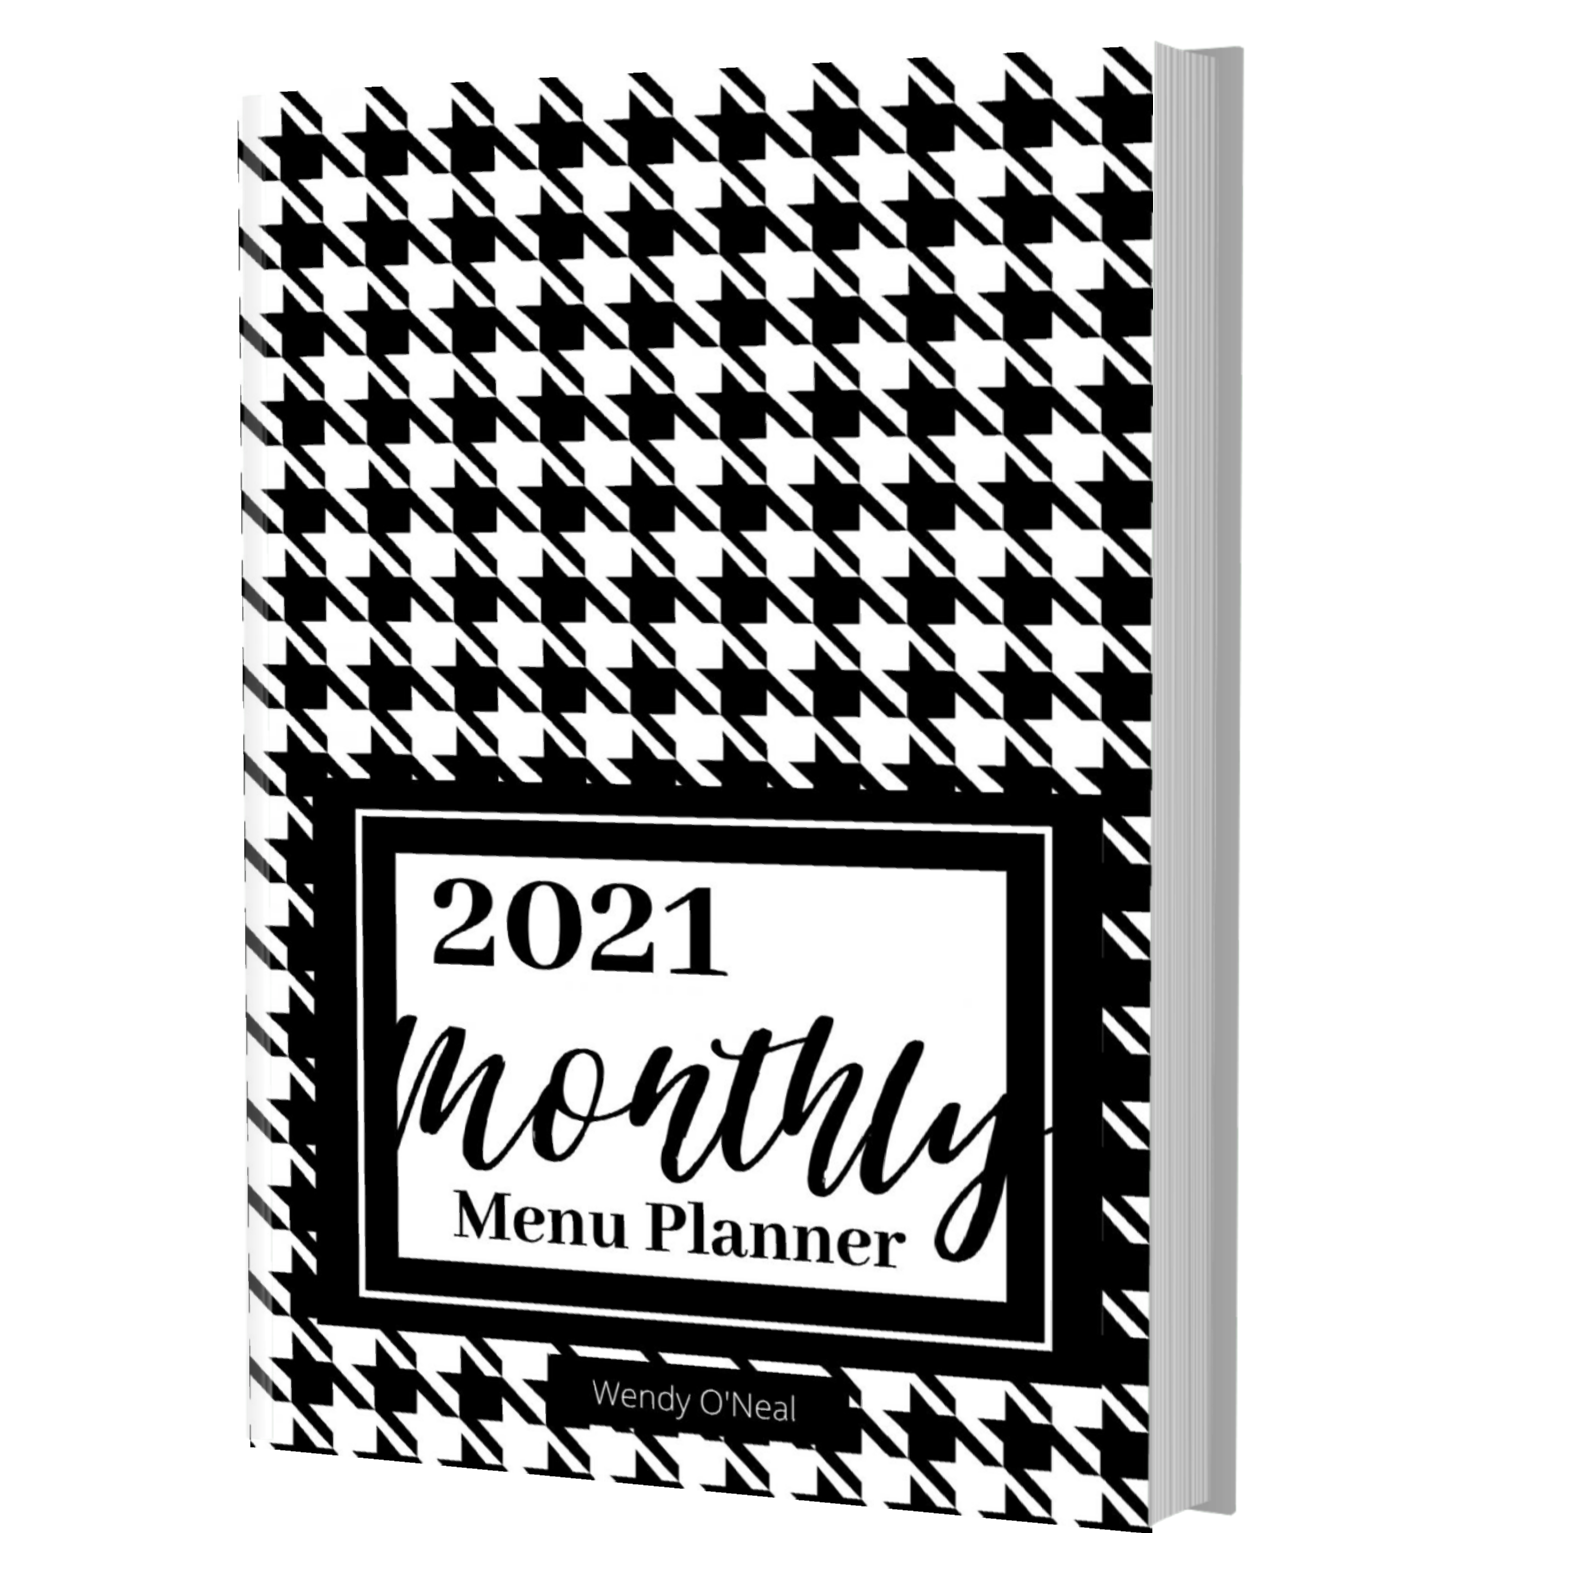 Don't let busy schedules keep you from planning healthy meals for your family.  Get a handle on menu planning, shopping, and recipe list with this black & white 6 x 9 Menu Planner. Order your menu planning journal TODAY. via @slingmama